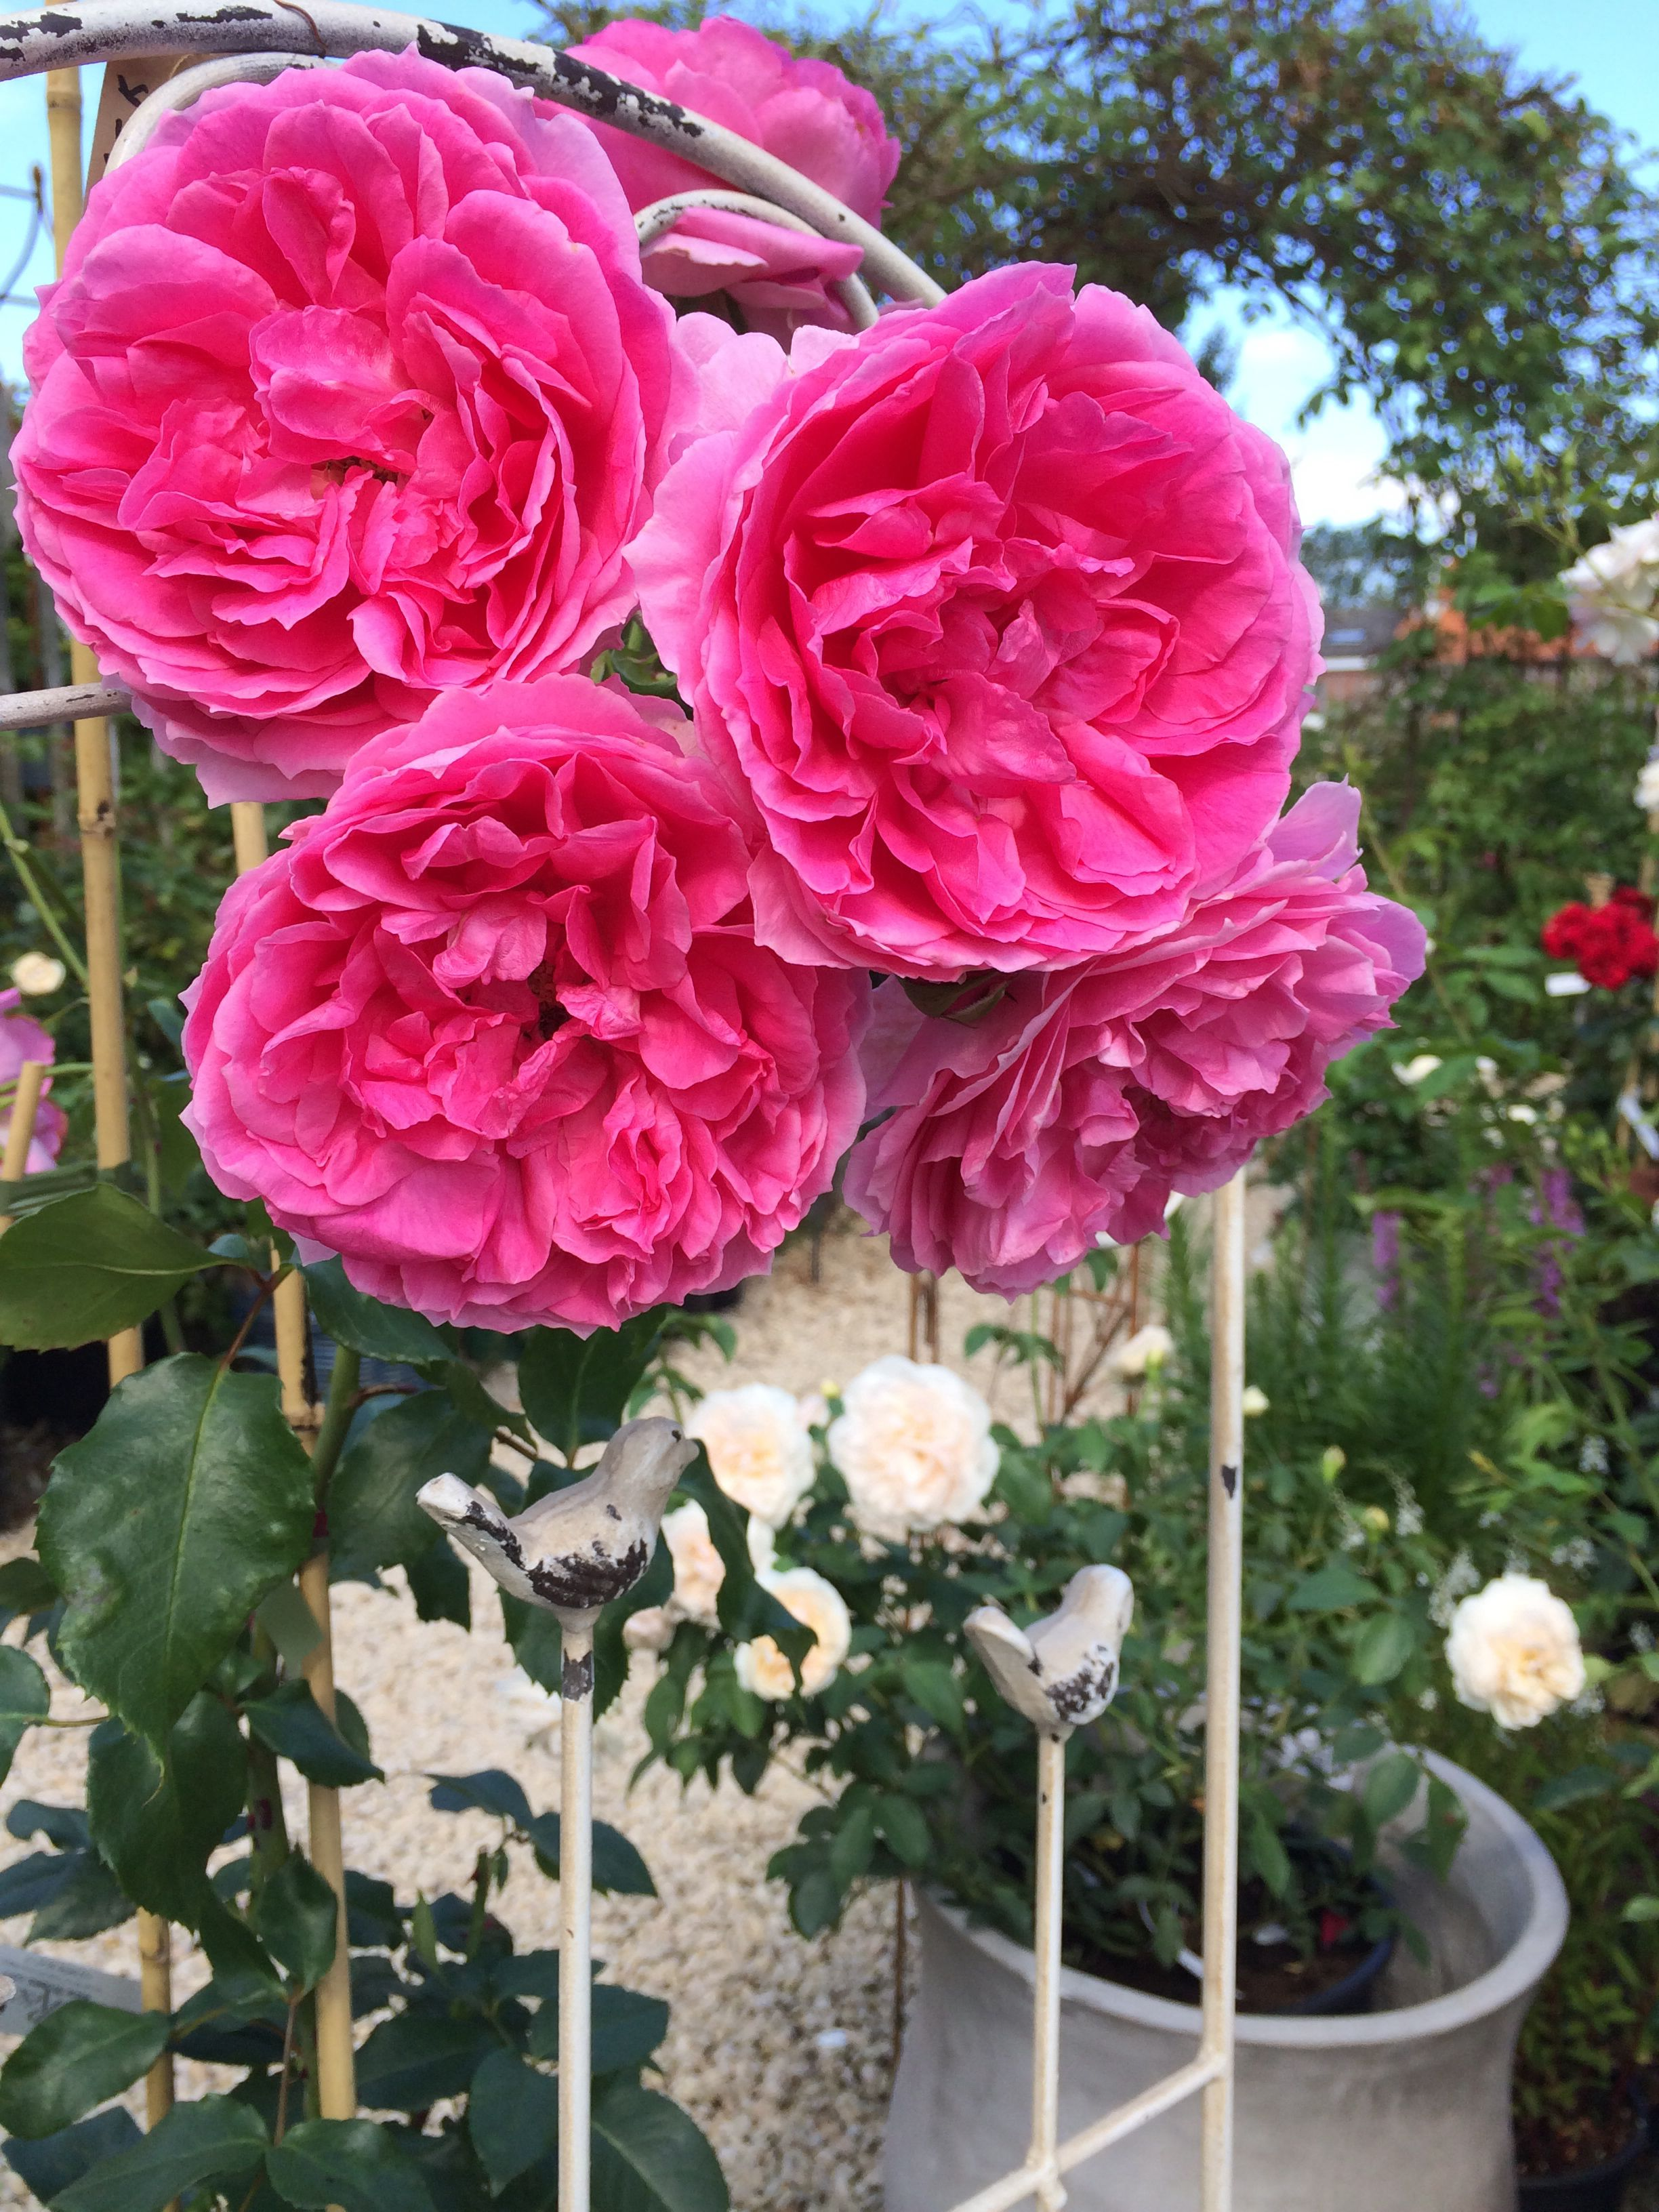 Pink cloud rose climbing roses filroses flowers pink cloud rose climbing roses filroses mightylinksfo